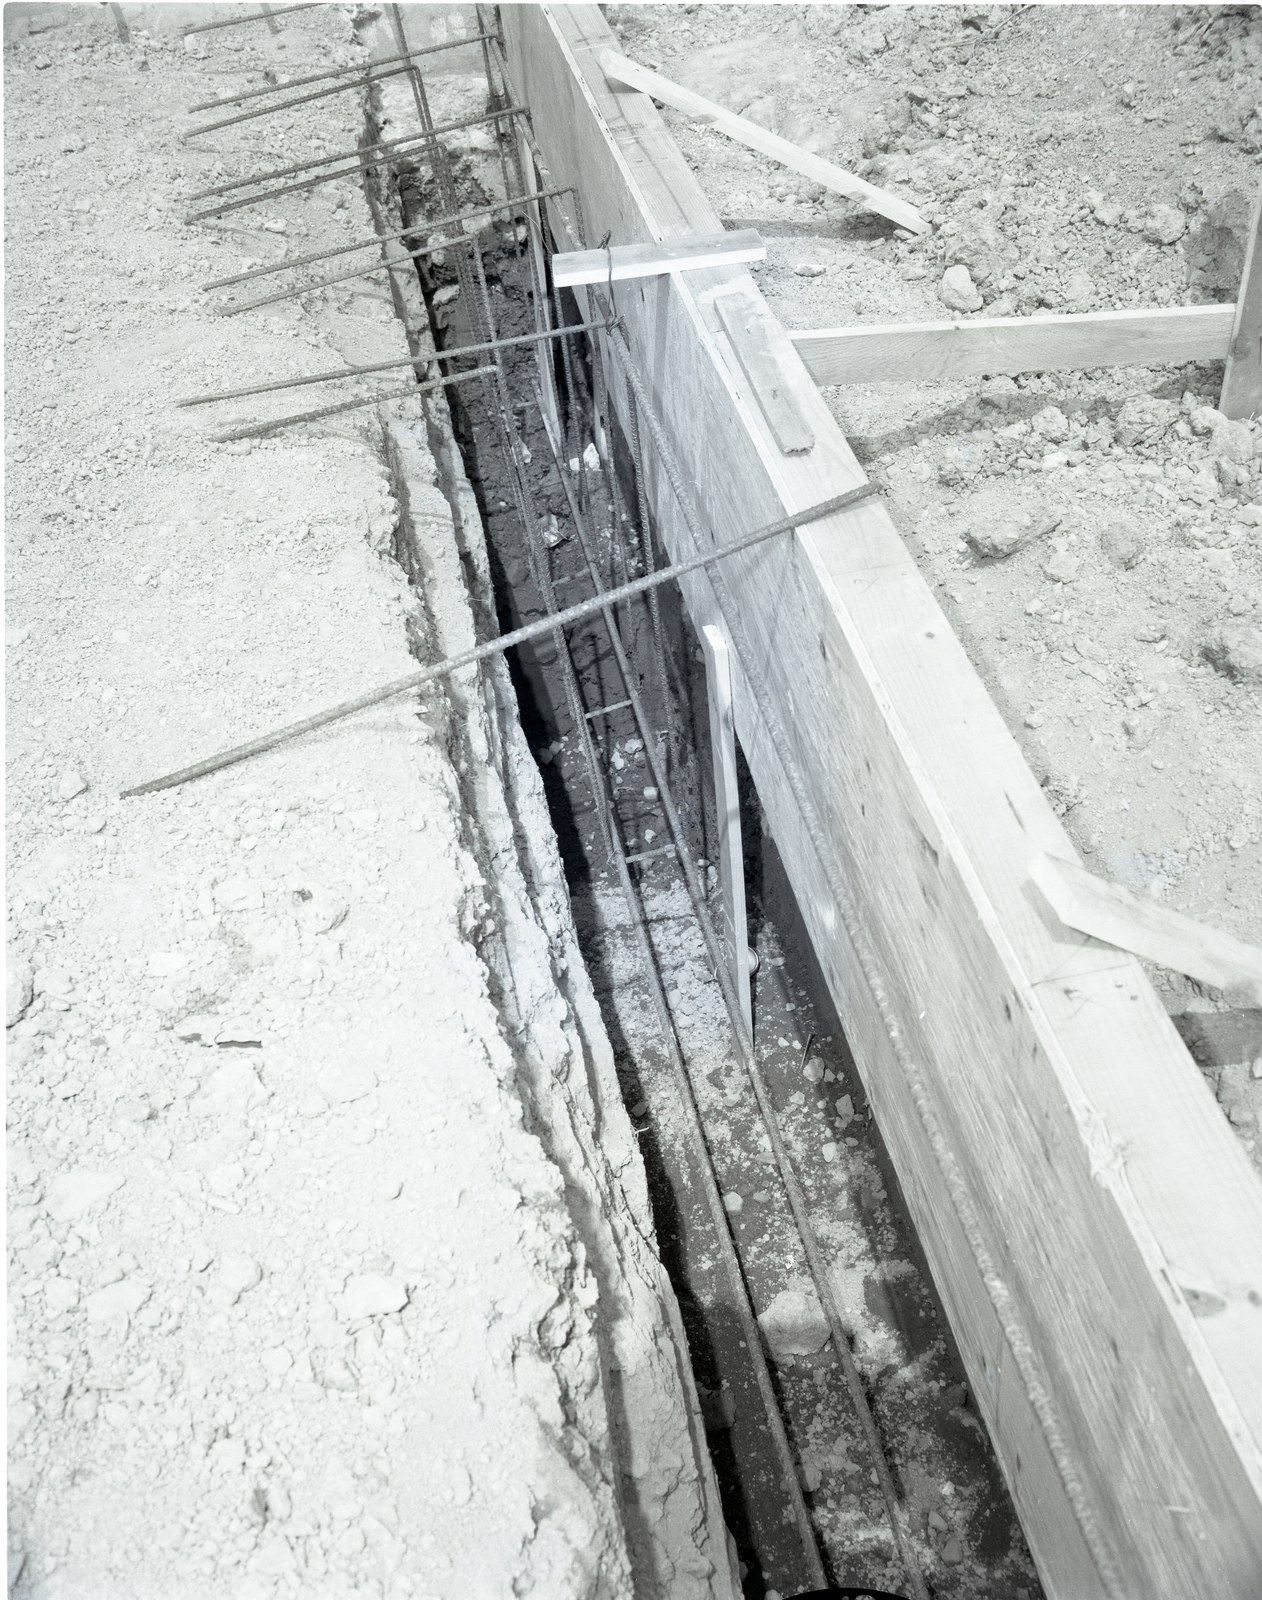 FOUNDATION - FOOTER FORMS - REBAR LAYOUT PRIOR TO CONCRETE POUR ON NEW STORAGE BUILDING